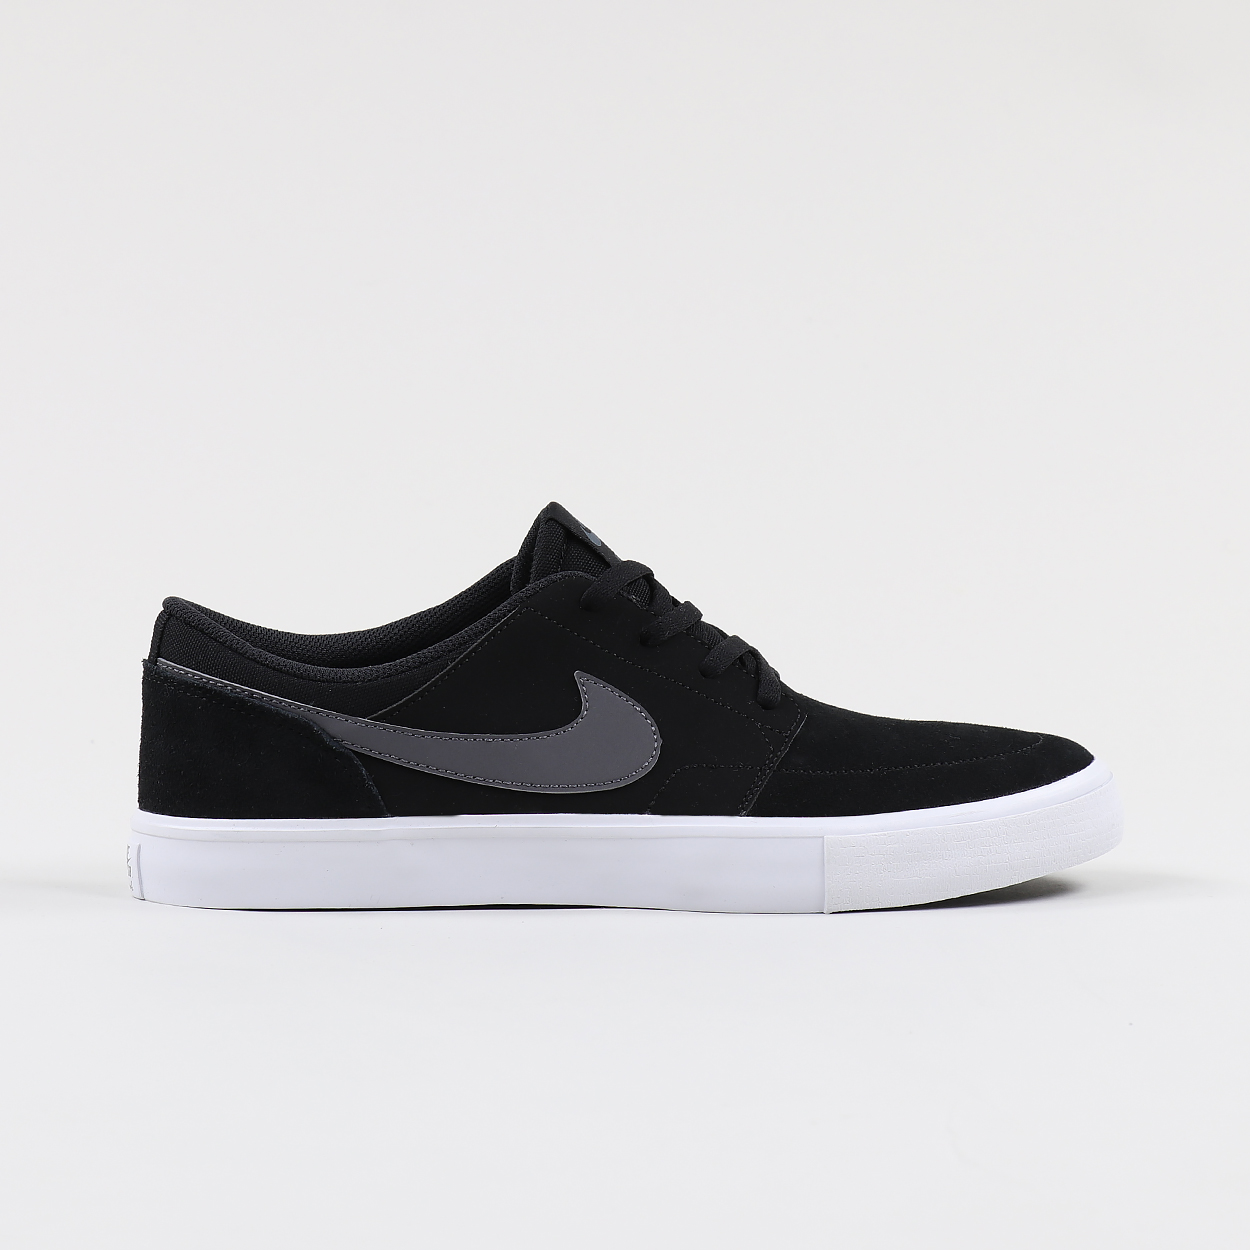 d6c96826e9 Nike SB Solarsoft Portmore II SkateboardingShoes Black Grey White £45.95